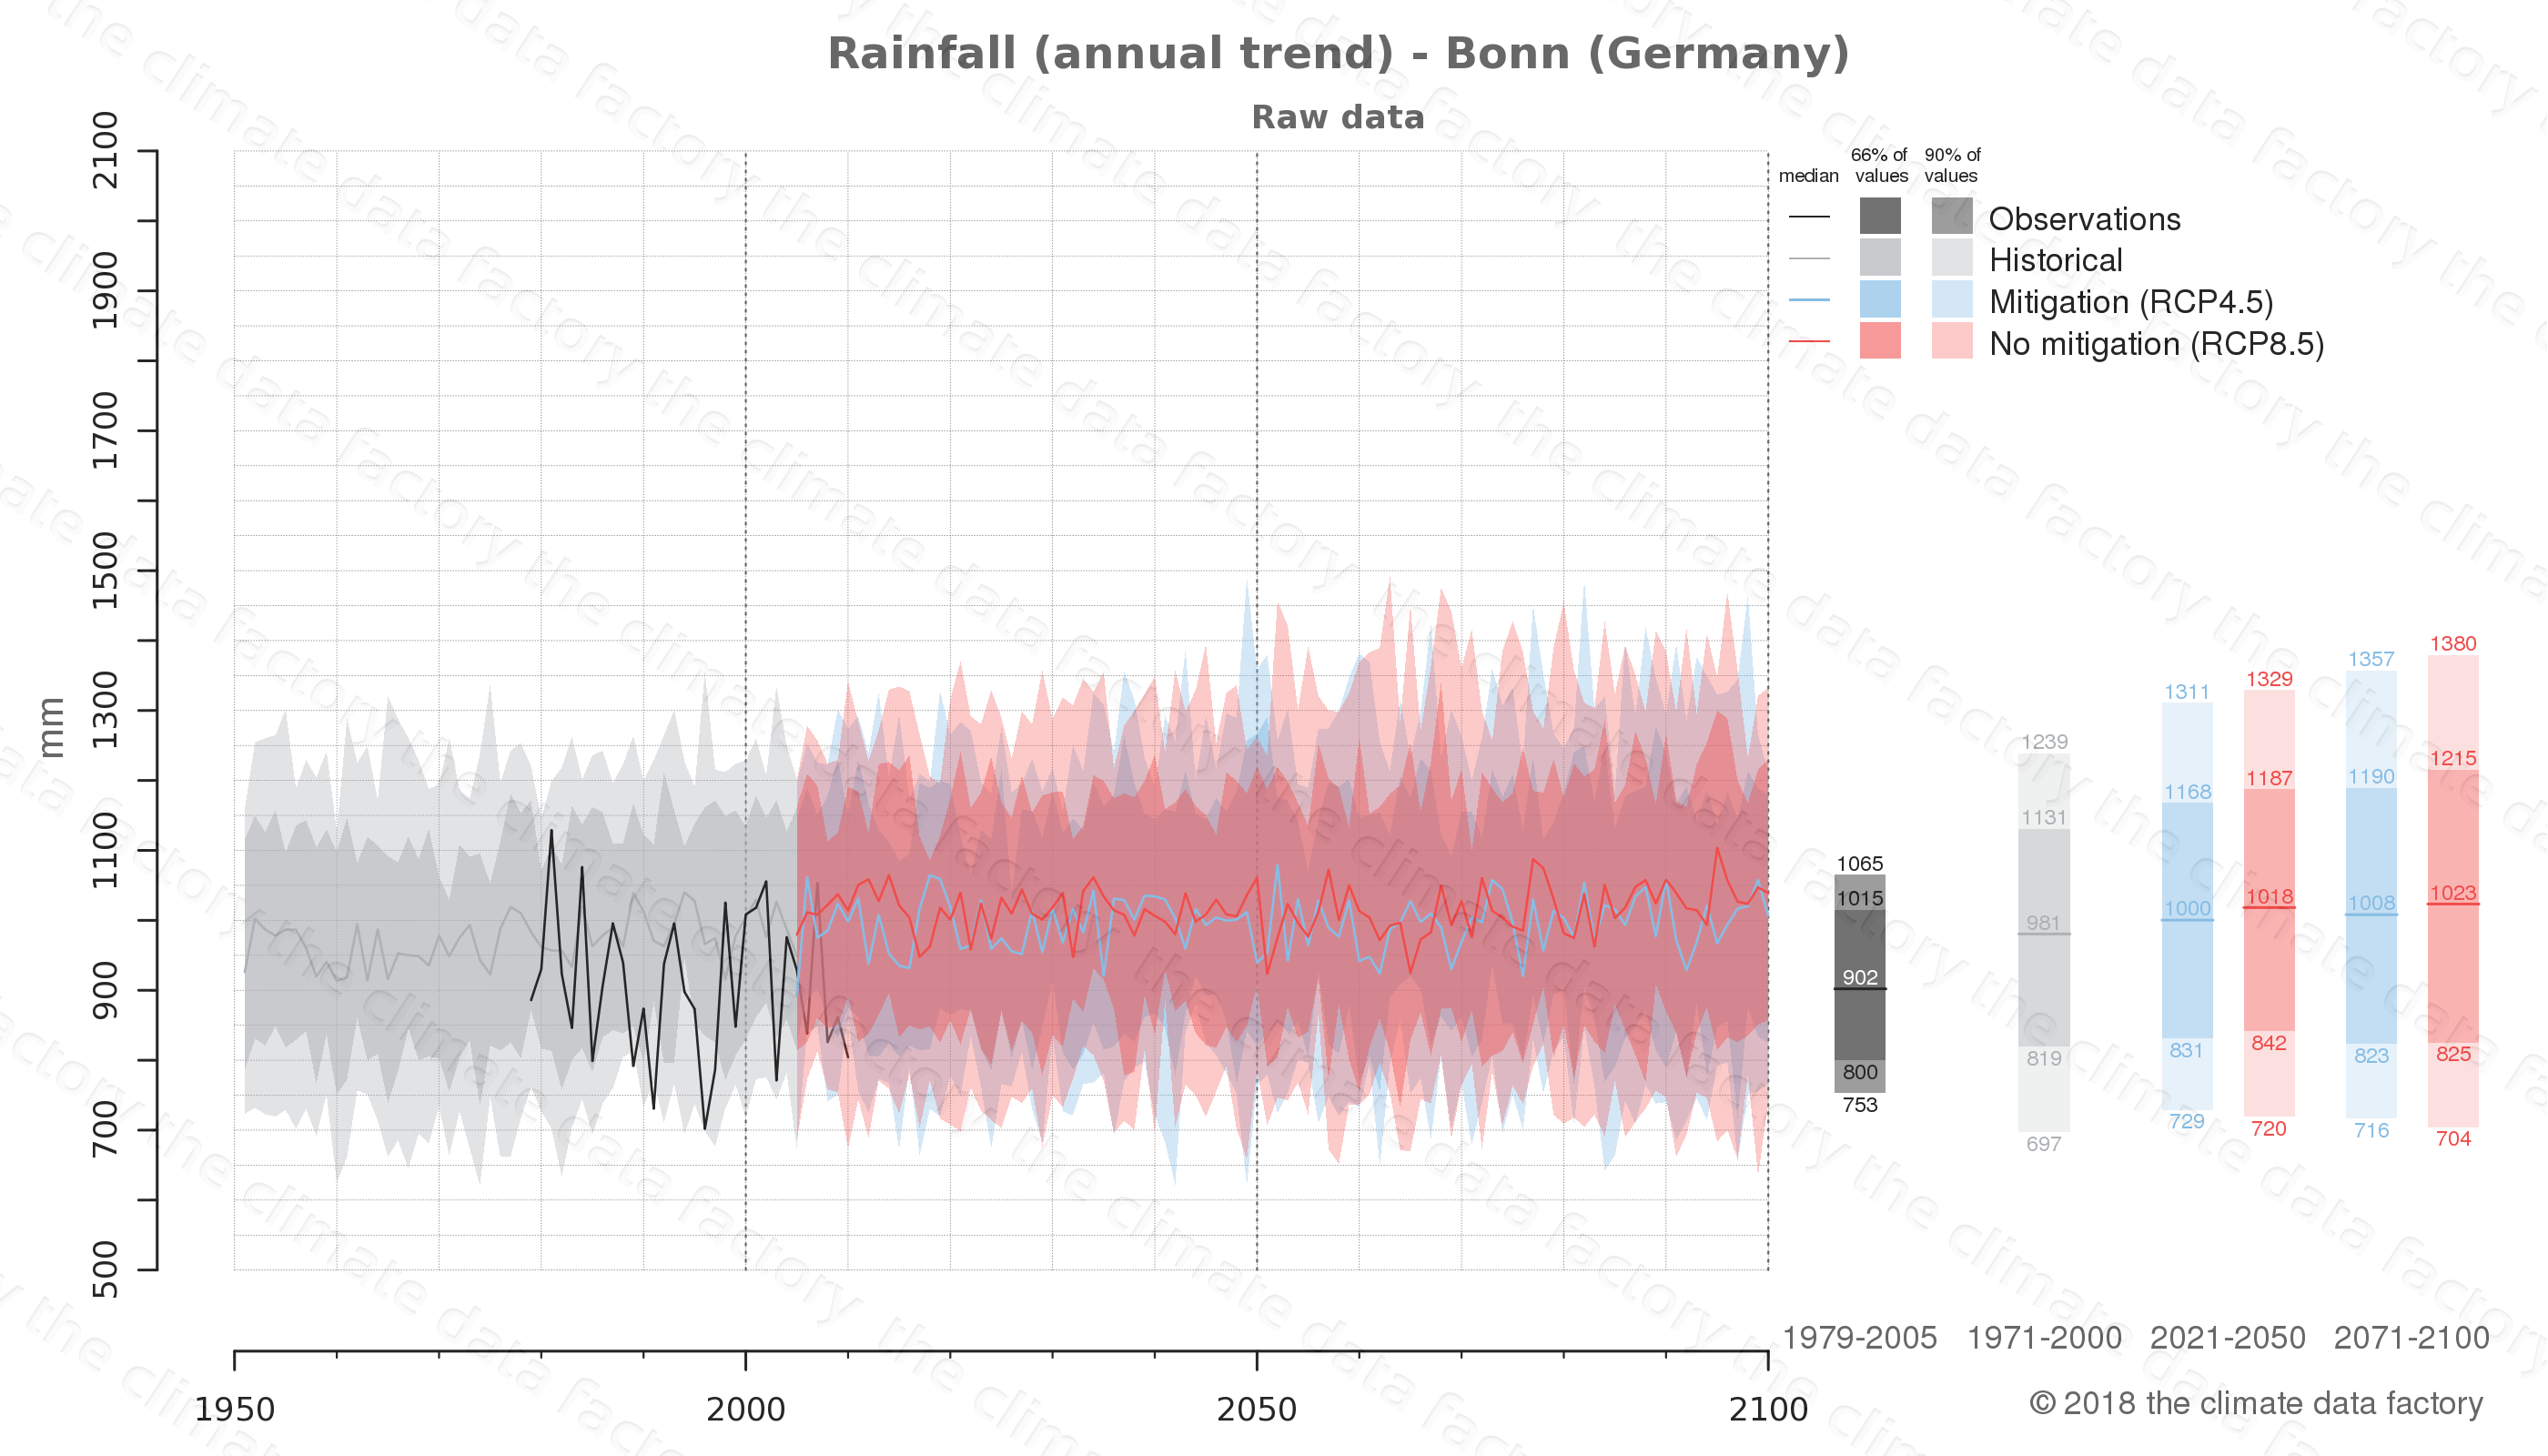 climate change data policy adaptation climate graph city data rainfall bonn germany